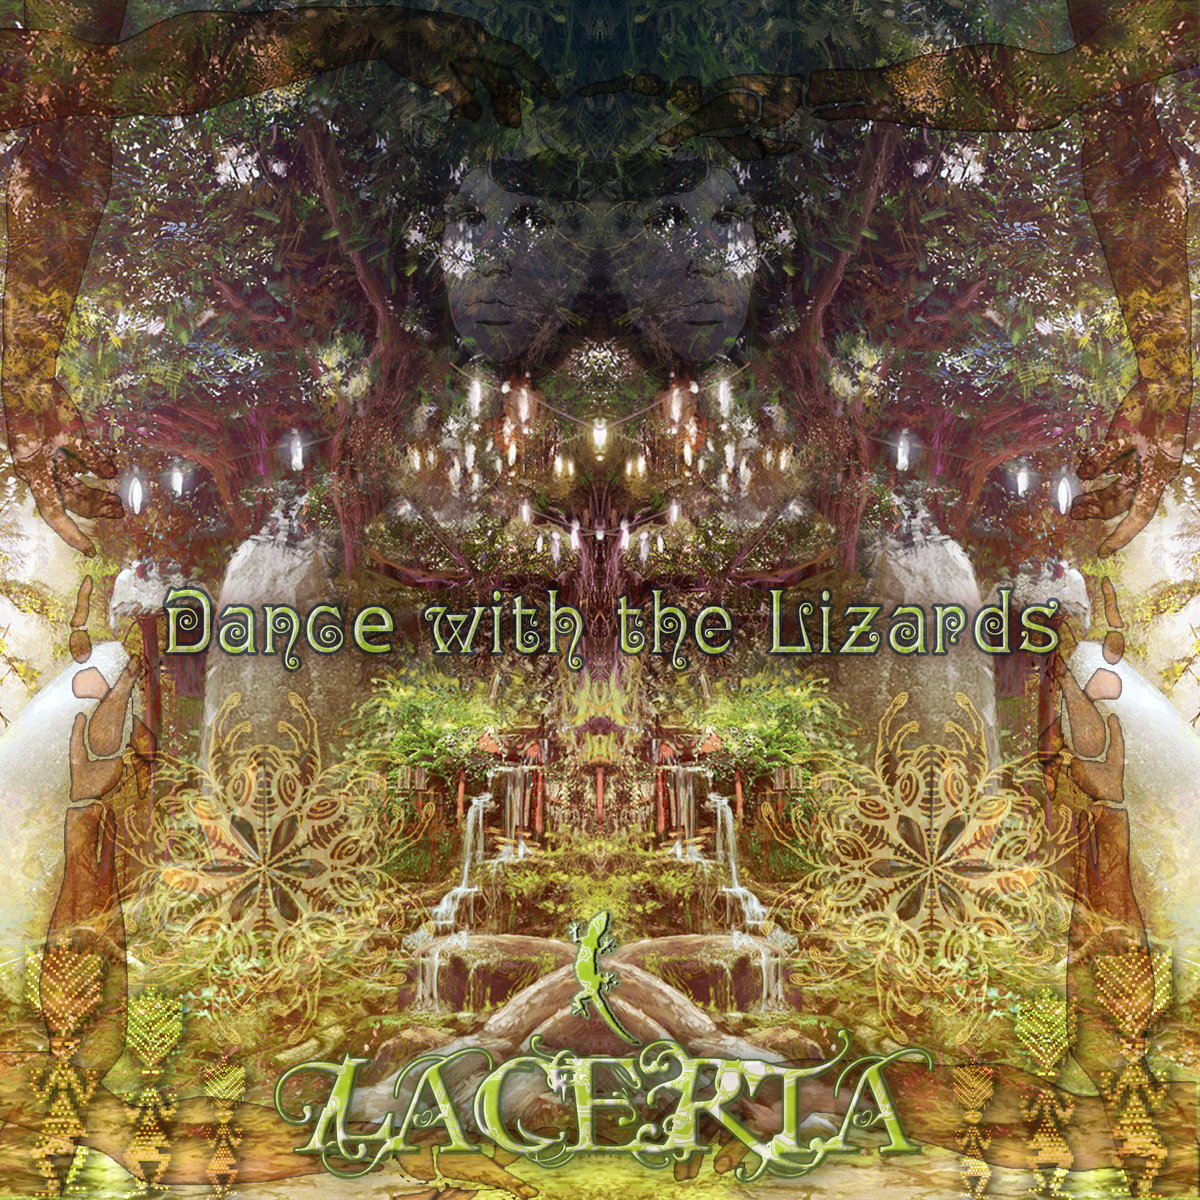 Lacerta - Wizards @ 'Dance With The Lizards' album (ambient, electronic)